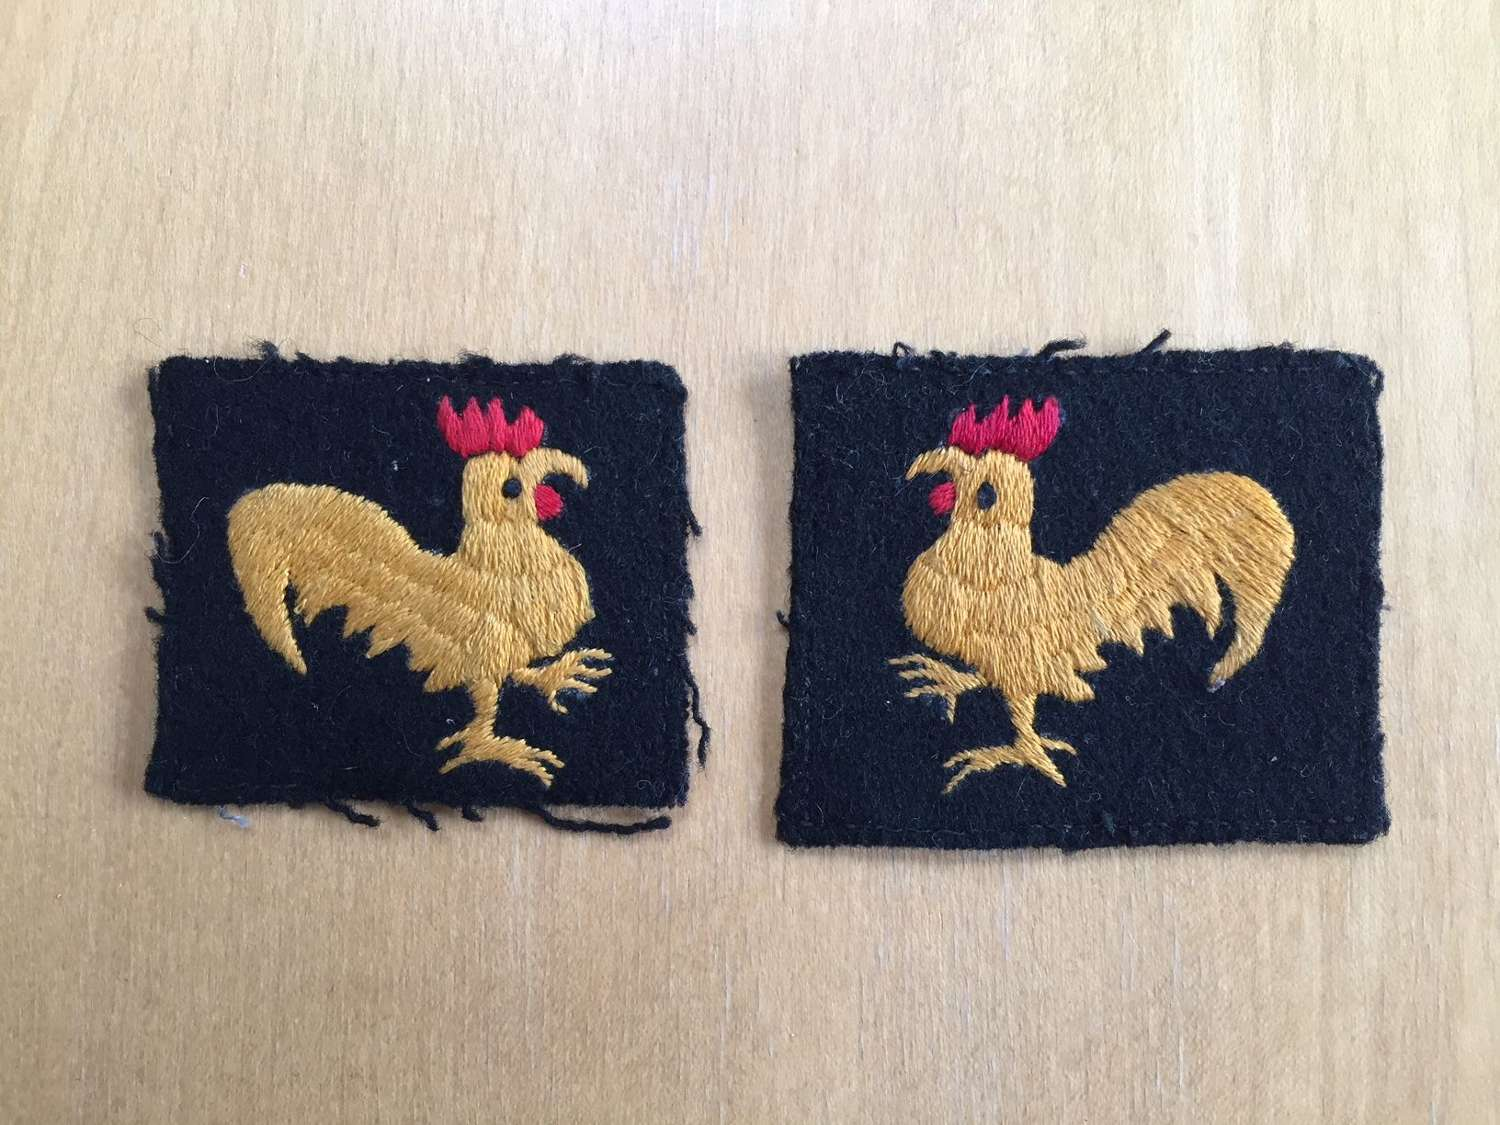 40th Division pair of embroidered formation signs